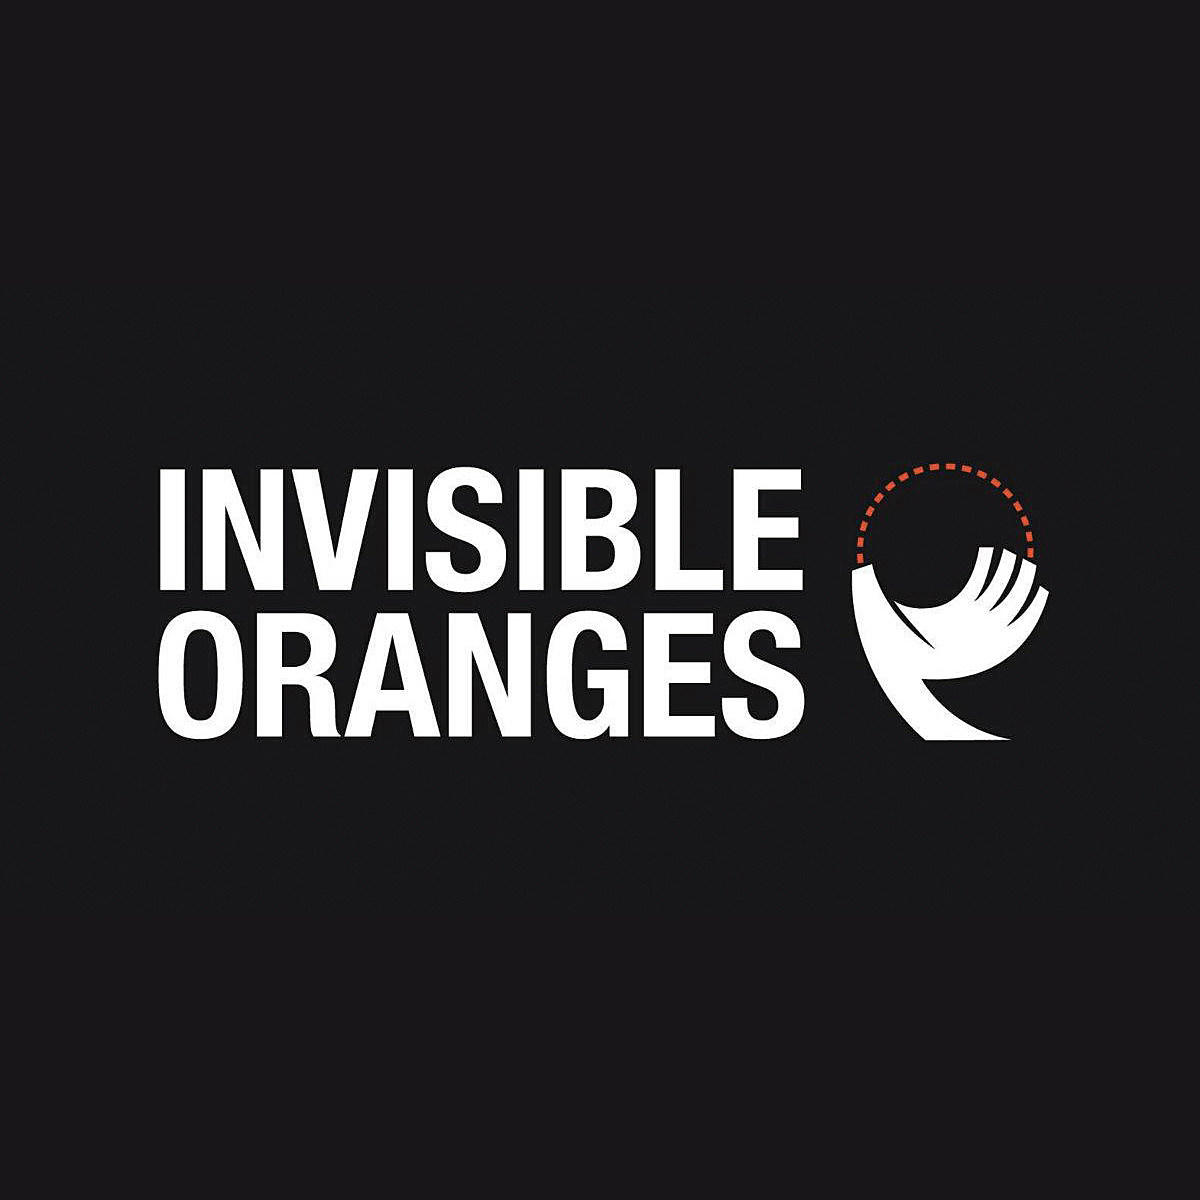 Best Of 2018 - Invisible Oranges - The Metal Blog